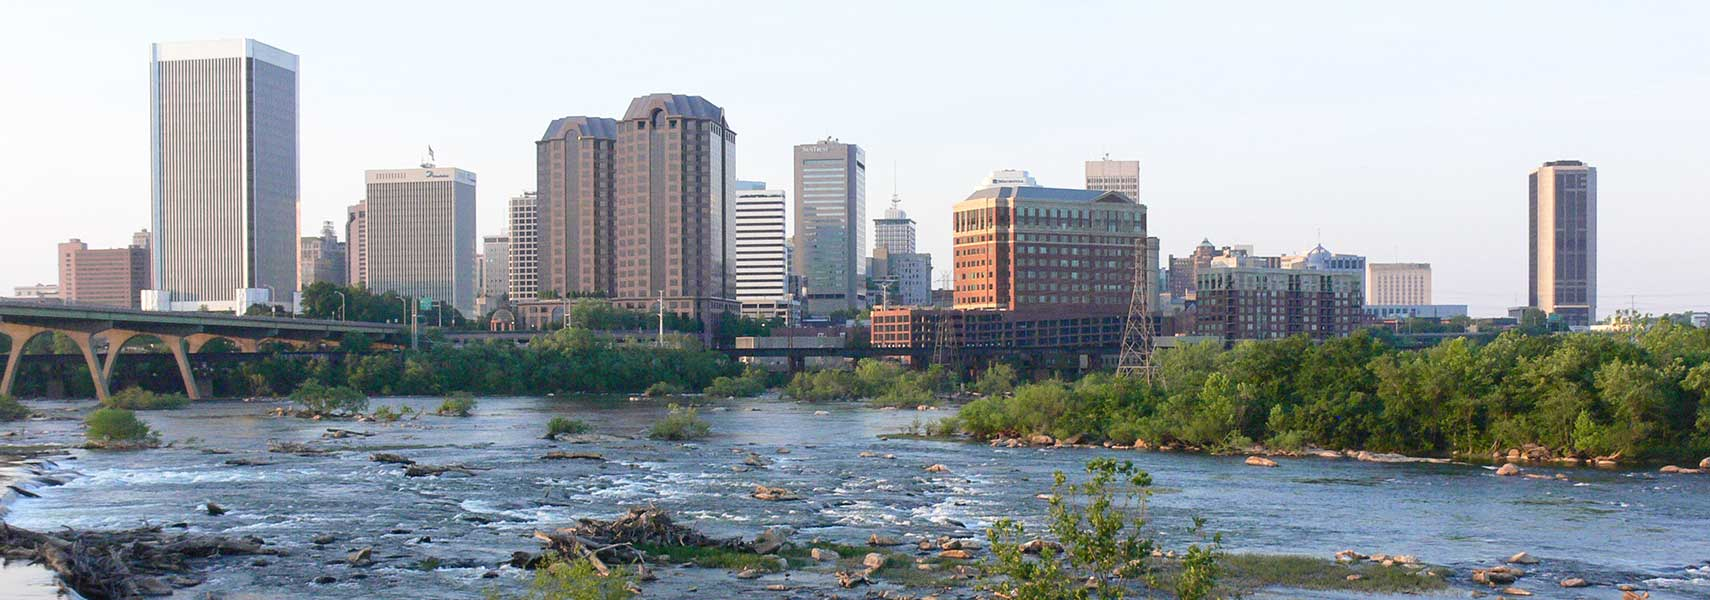 City Of Richmond Va >> Google Map of Richmond, Virginia, USA - Nations Online Project